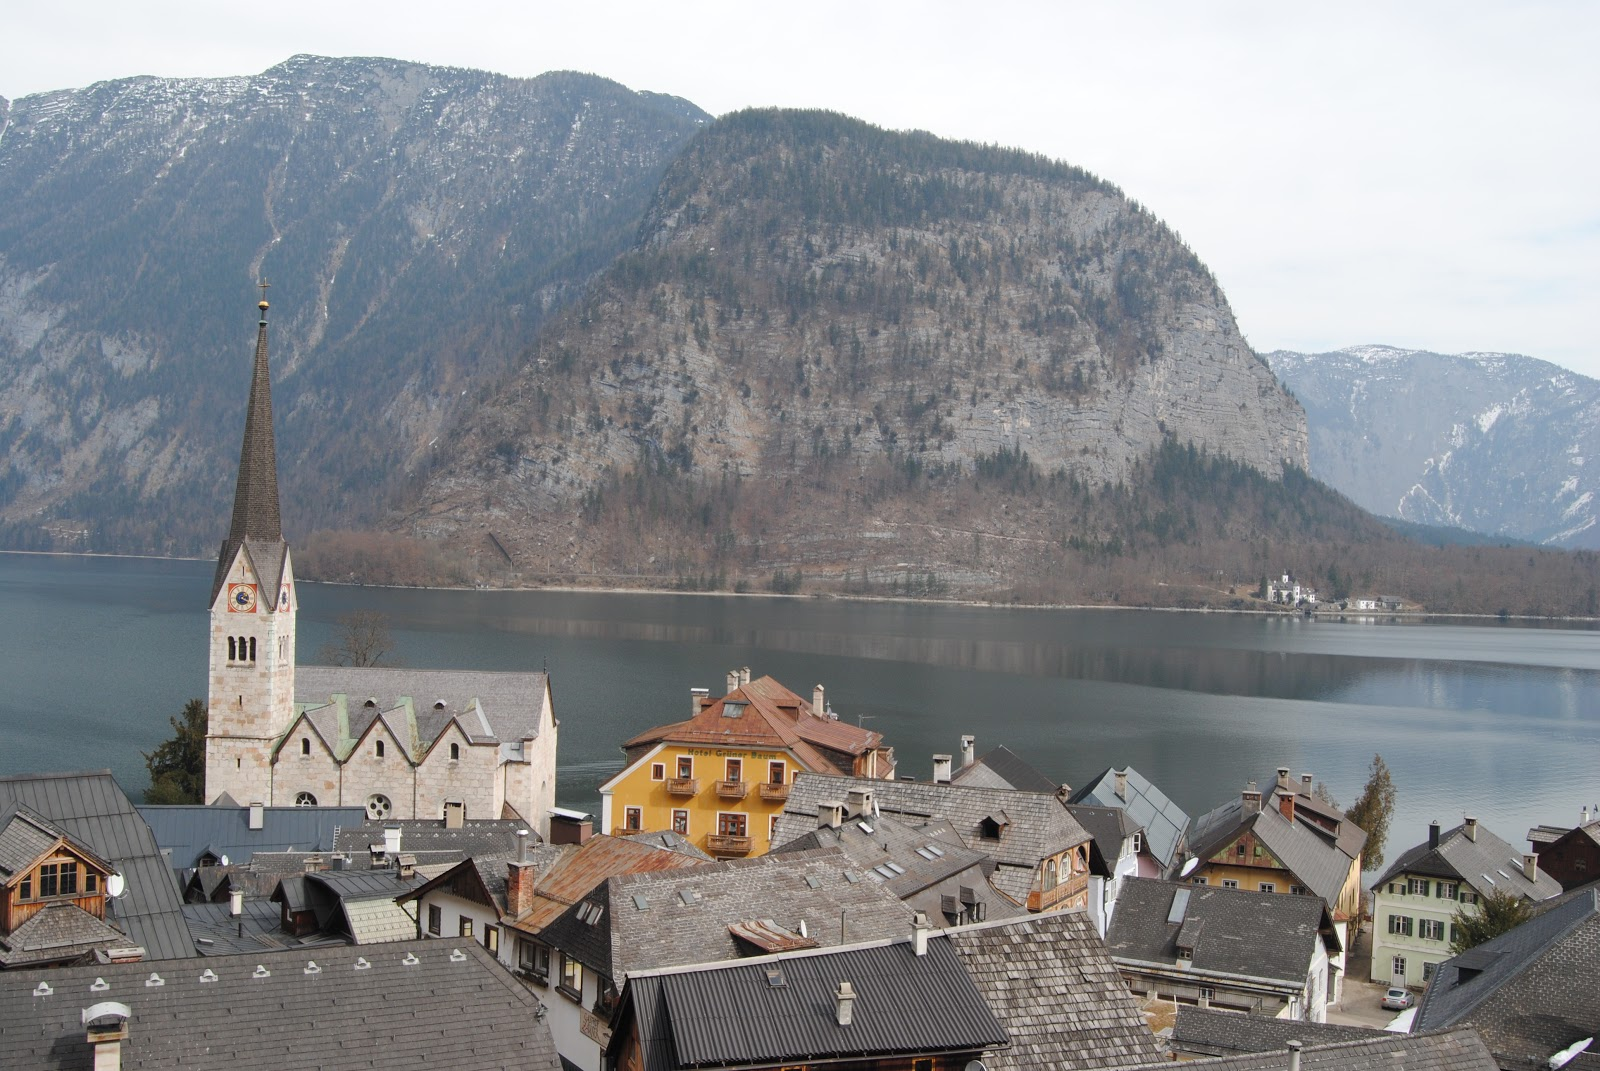 One Of The More Interesting Things About Hallstatt Is The Beinhaus Or Bone  House, Home Of More Than 1,200 Skulls. Creepy, I Know.